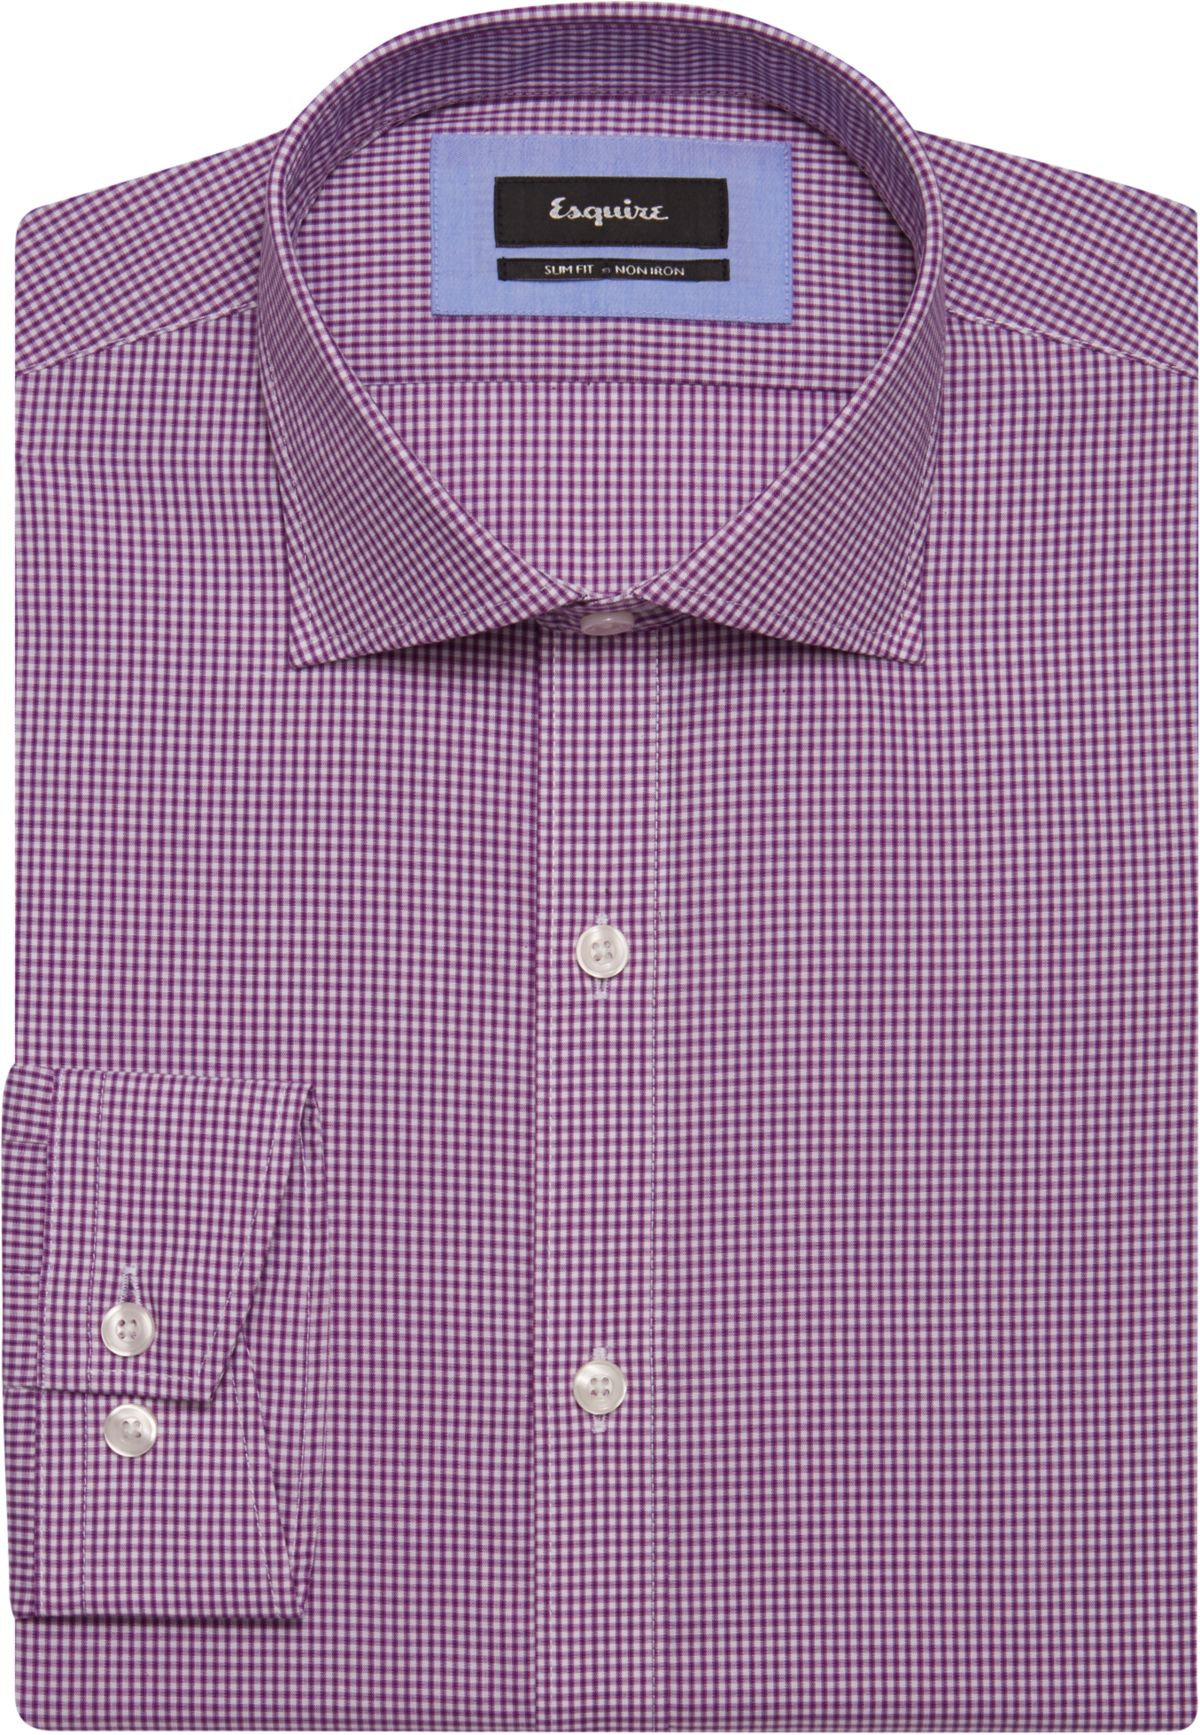 Esquire Pink Check Slim Fit Dress Shirt - Men's $369.99 Designer ...